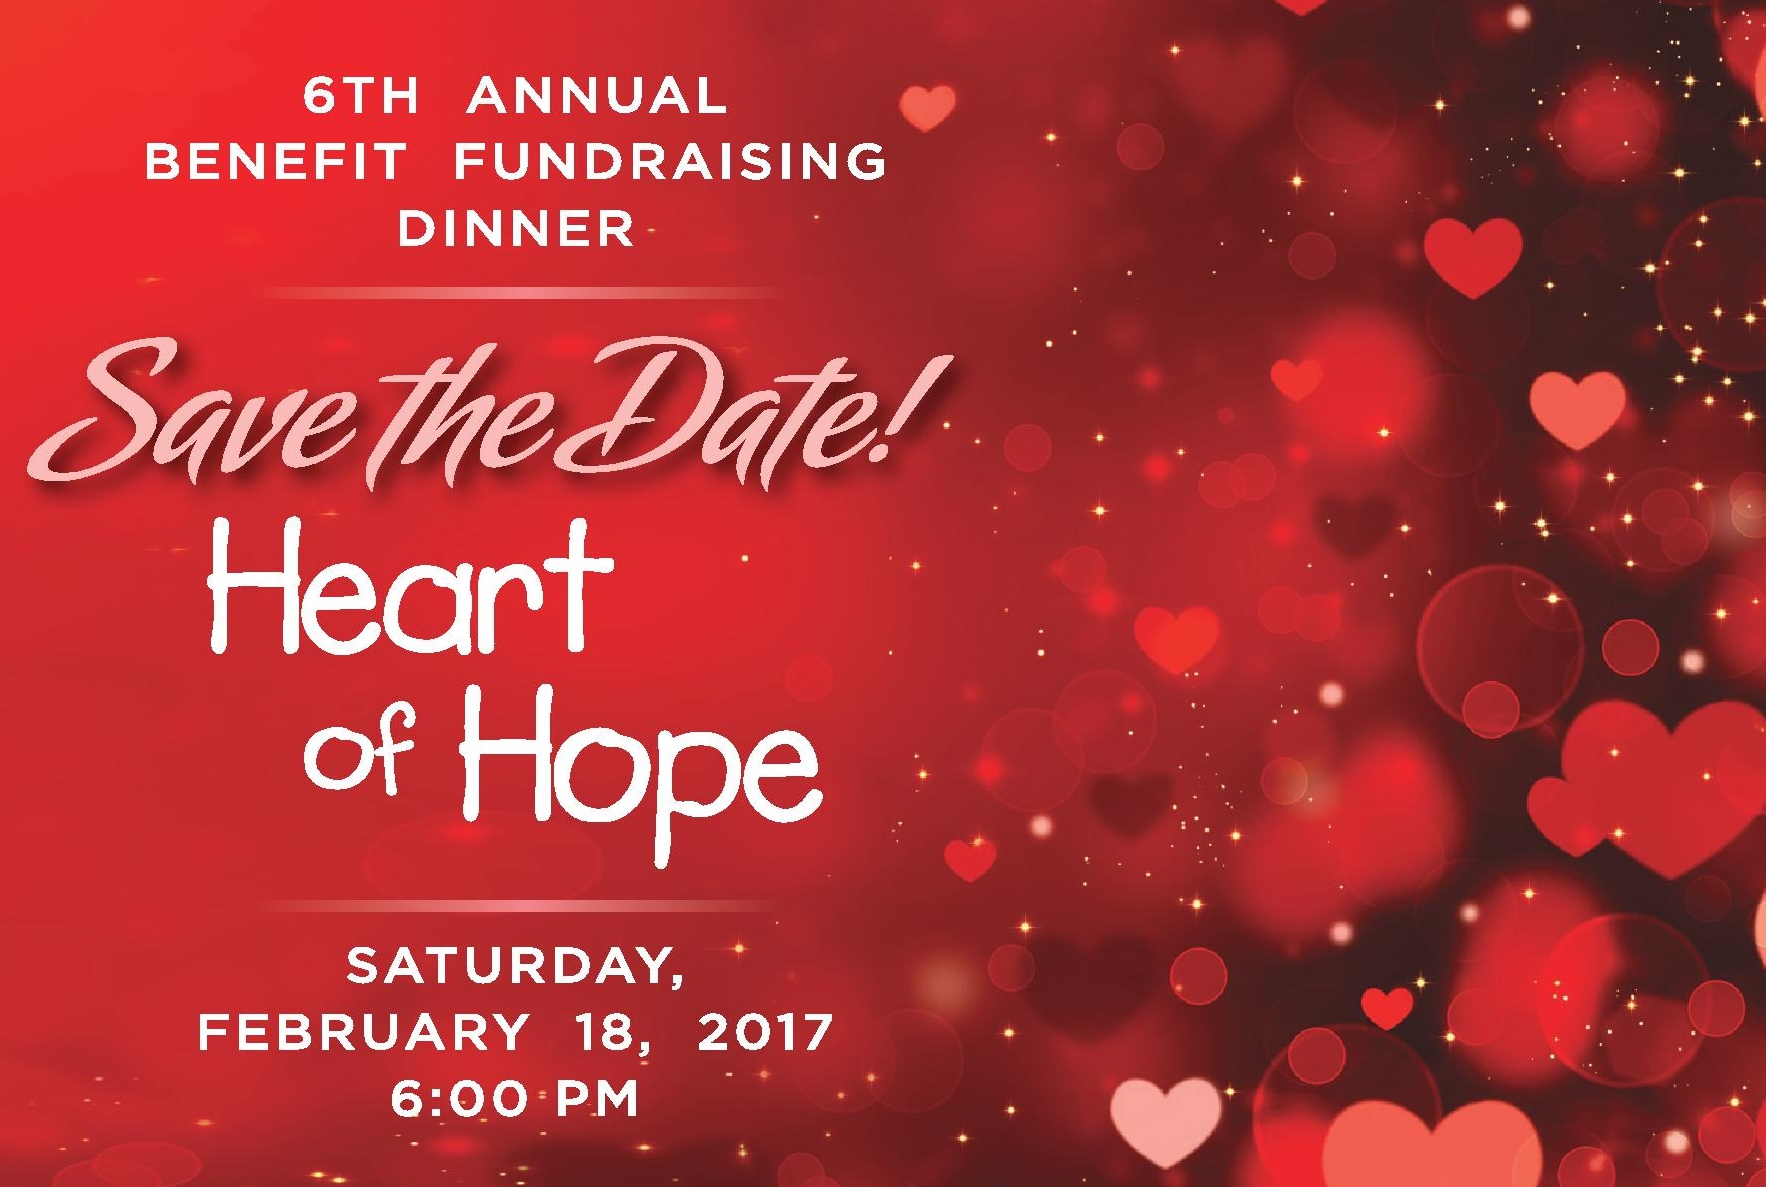 6th Annual Benefit Fundraising Dinner